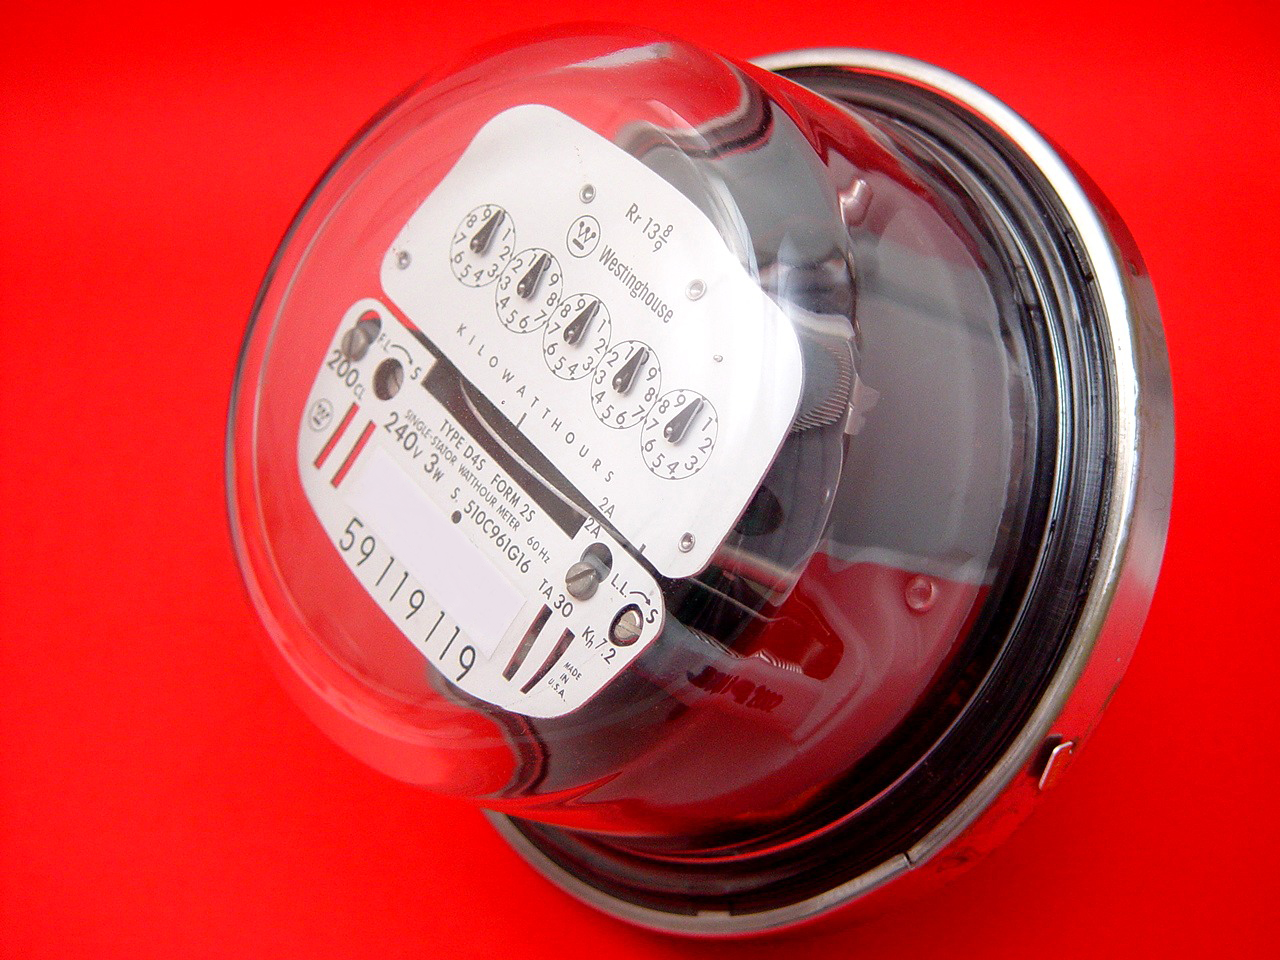 Analog Electric Meter - Watthour Meter - Analog Only Electric Utility Meter